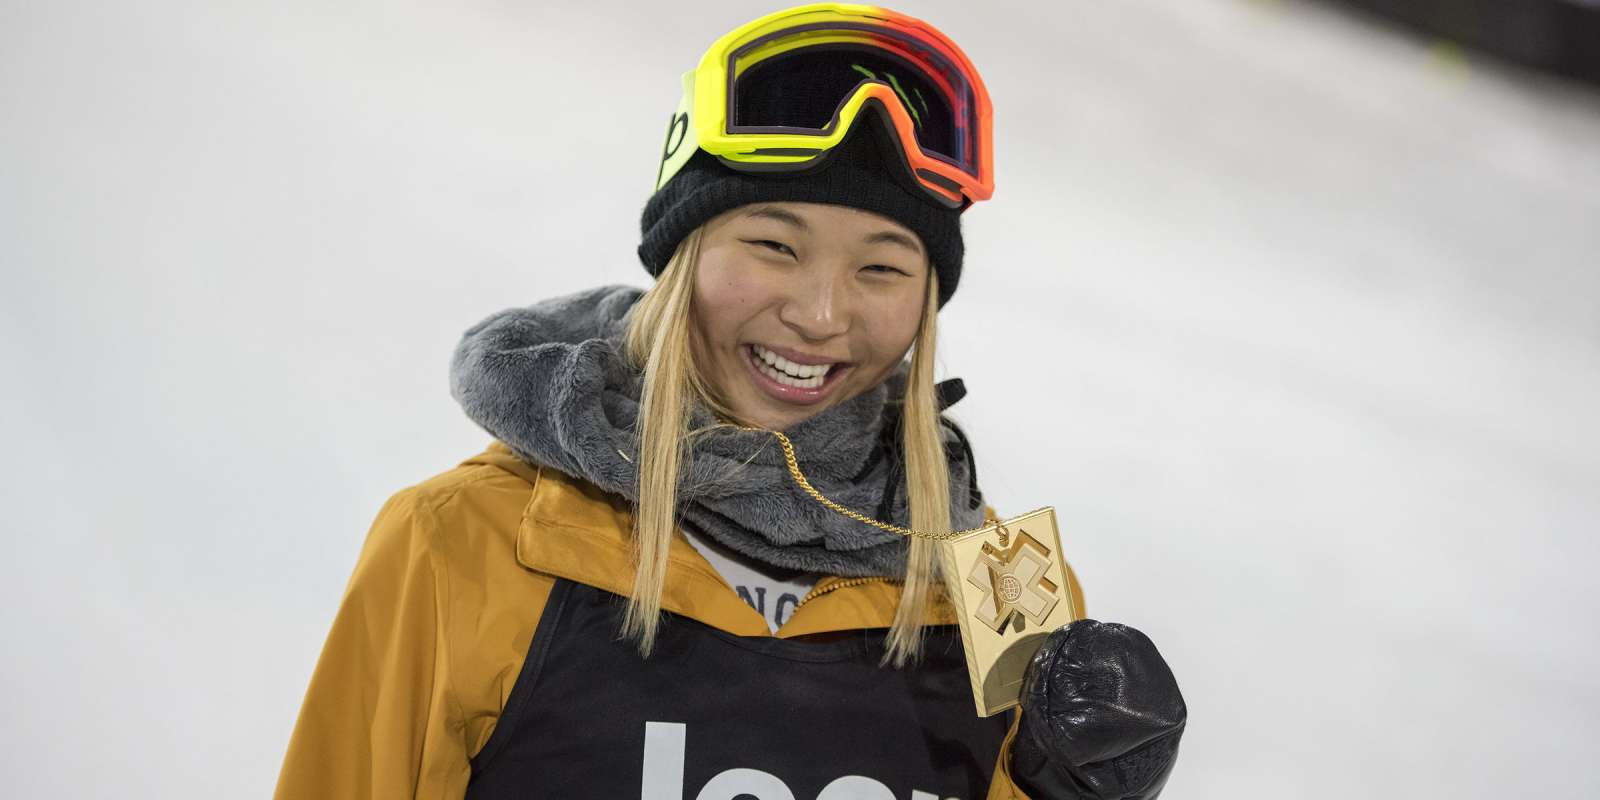 Images of Winter X Games Snowboarding.